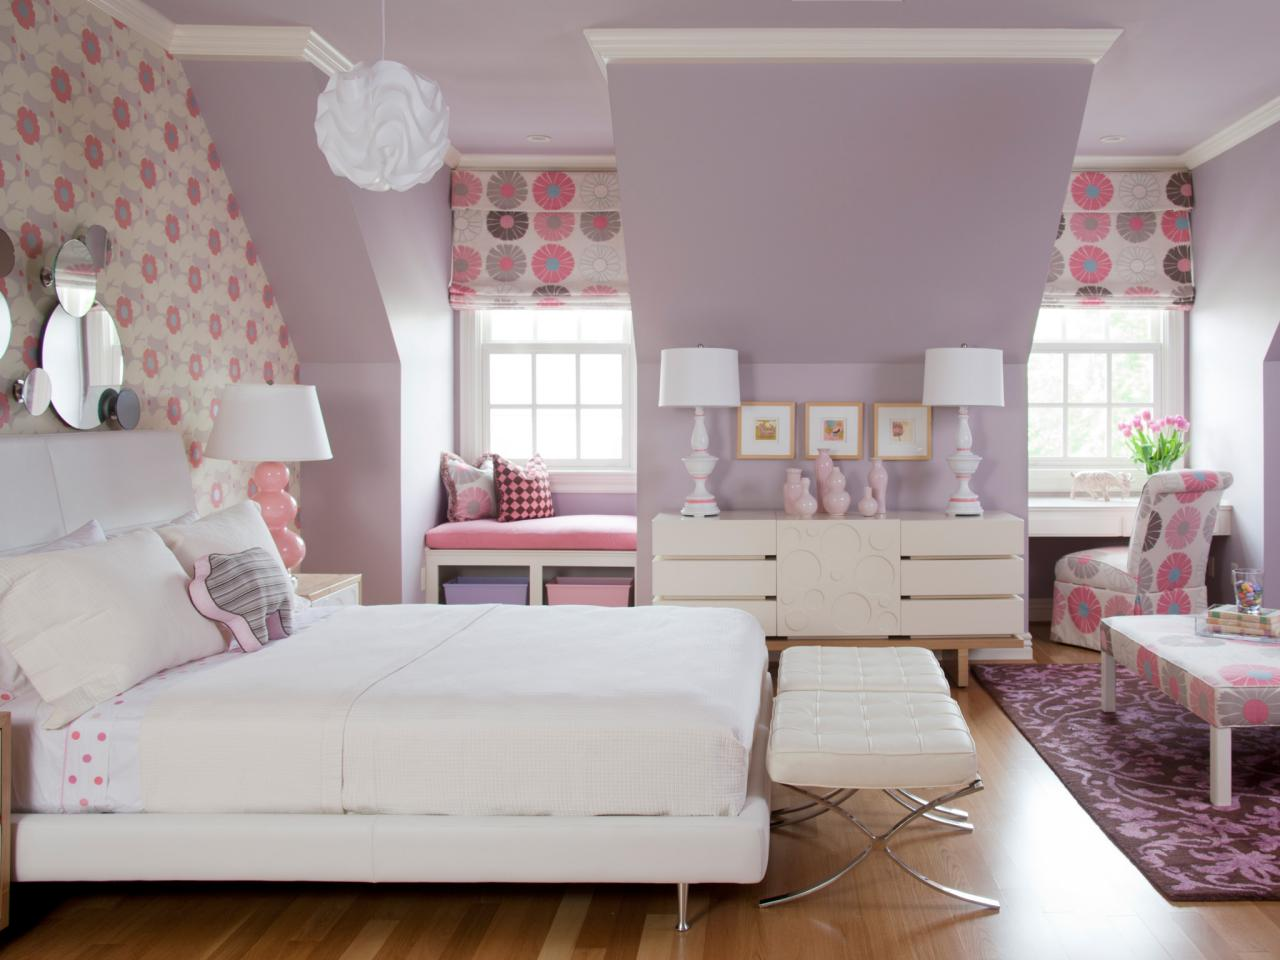 nice Wall Paint Ideas For Bedroom Part - 9: Original_TobiFairley-Summer-Color-Flirty-Pink-Kids-Room_4x3